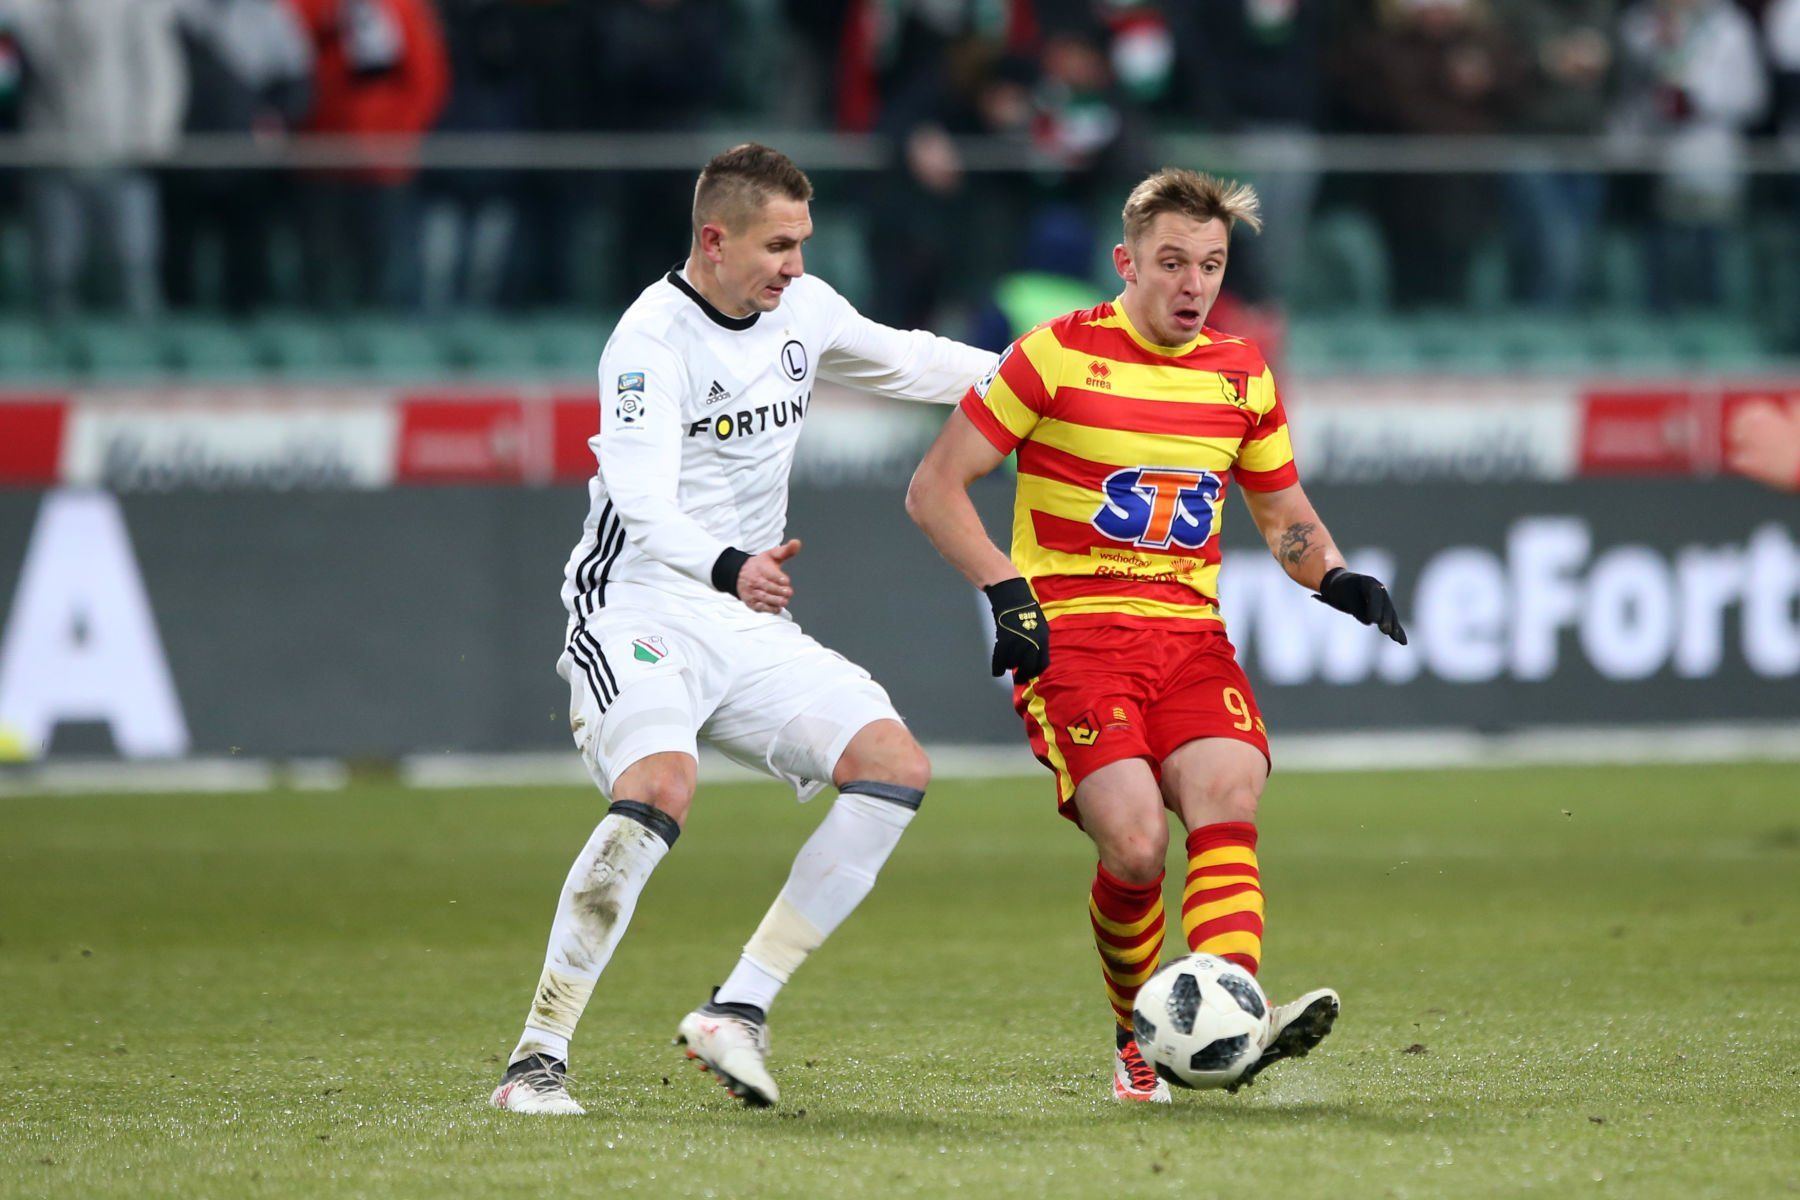 WARSZAWA 27.02.2018 MECZ 25. KOLEJKA LOTTO EKSTRAKLASA SEZON 2017/18 --- POLISH FOOTBALL TOP LEAGUE MATCH IN WARSAW: LEGIA WARSZAWA - JAGIELLONIA BIALYSTOK 0:2 ARTUR JEDRZEJCZYK ARVYDAS NOVIKOVAS FOT. PIOTR KUCZA/ 400mm.pl